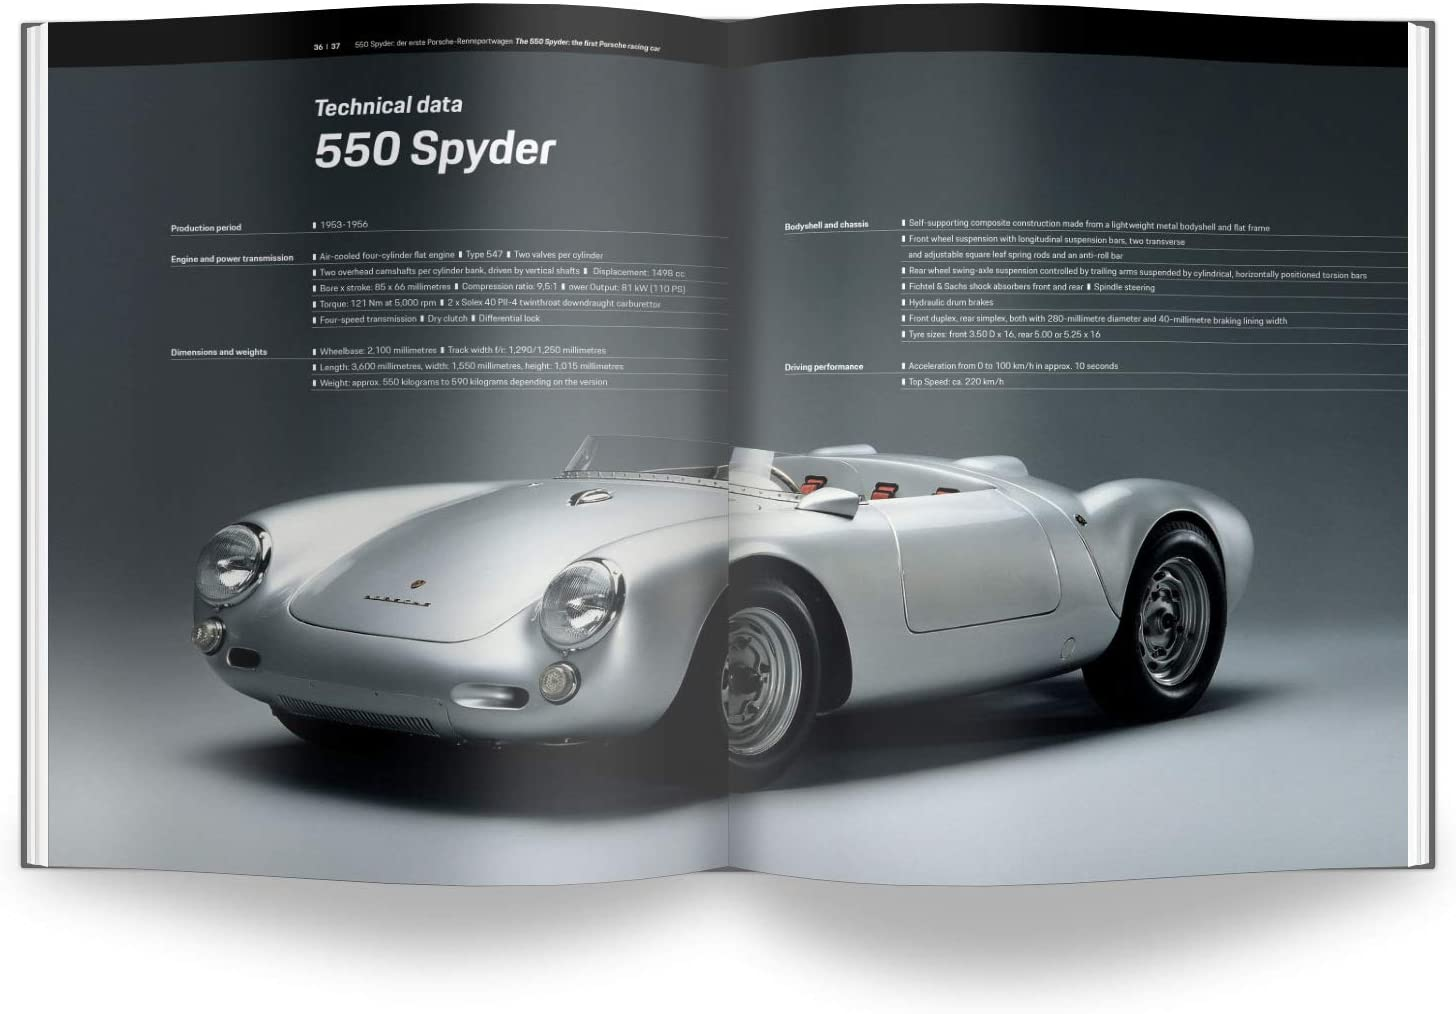 Porsche Carrera 547 1:3 Scale Engine Kit Book 550 Spyder